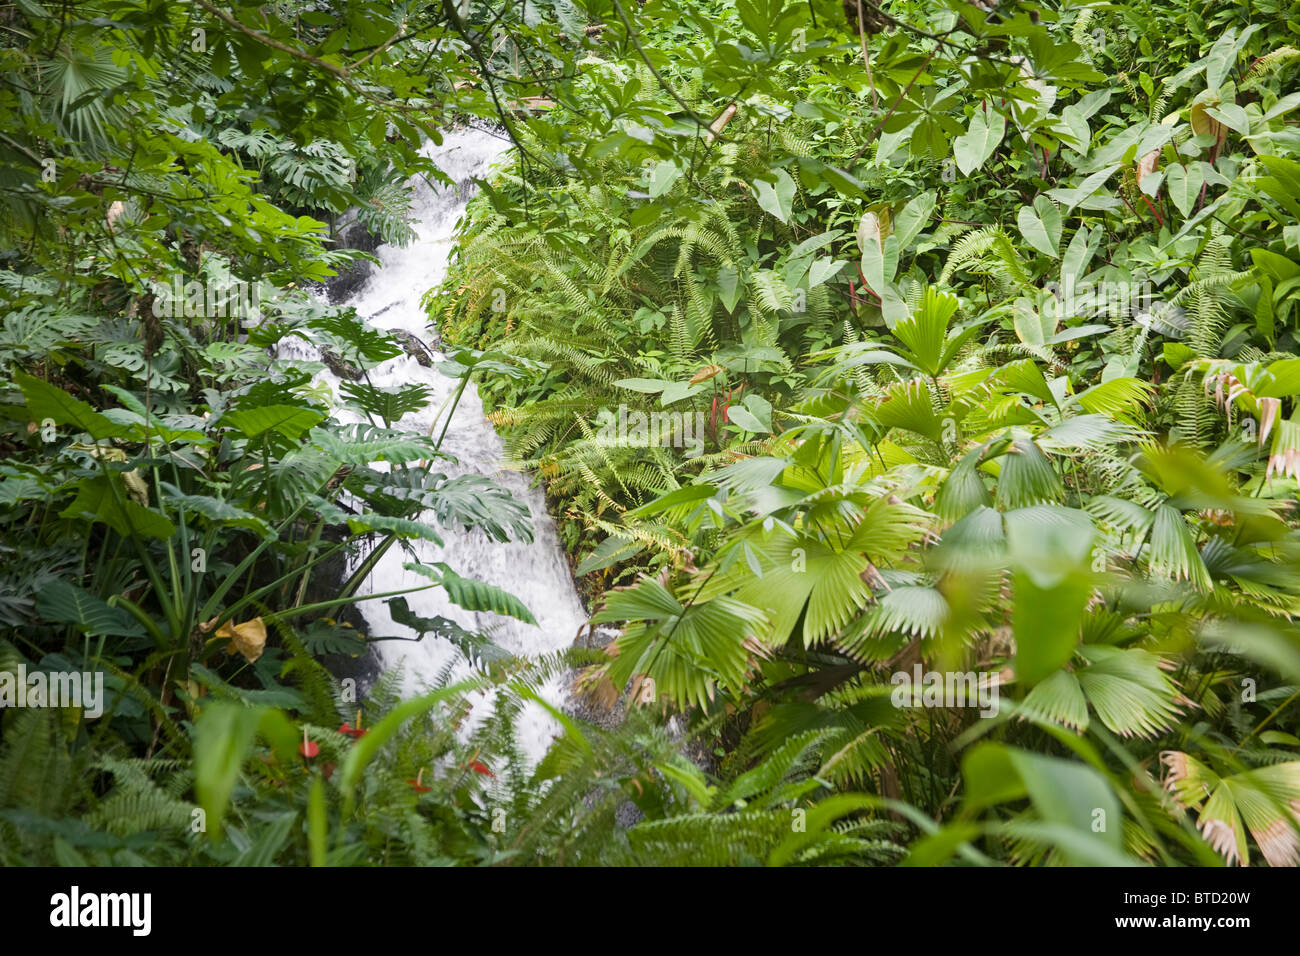 Waterfall Eden Project The worlds largest Greenhouse United Kingdom Stock Photo